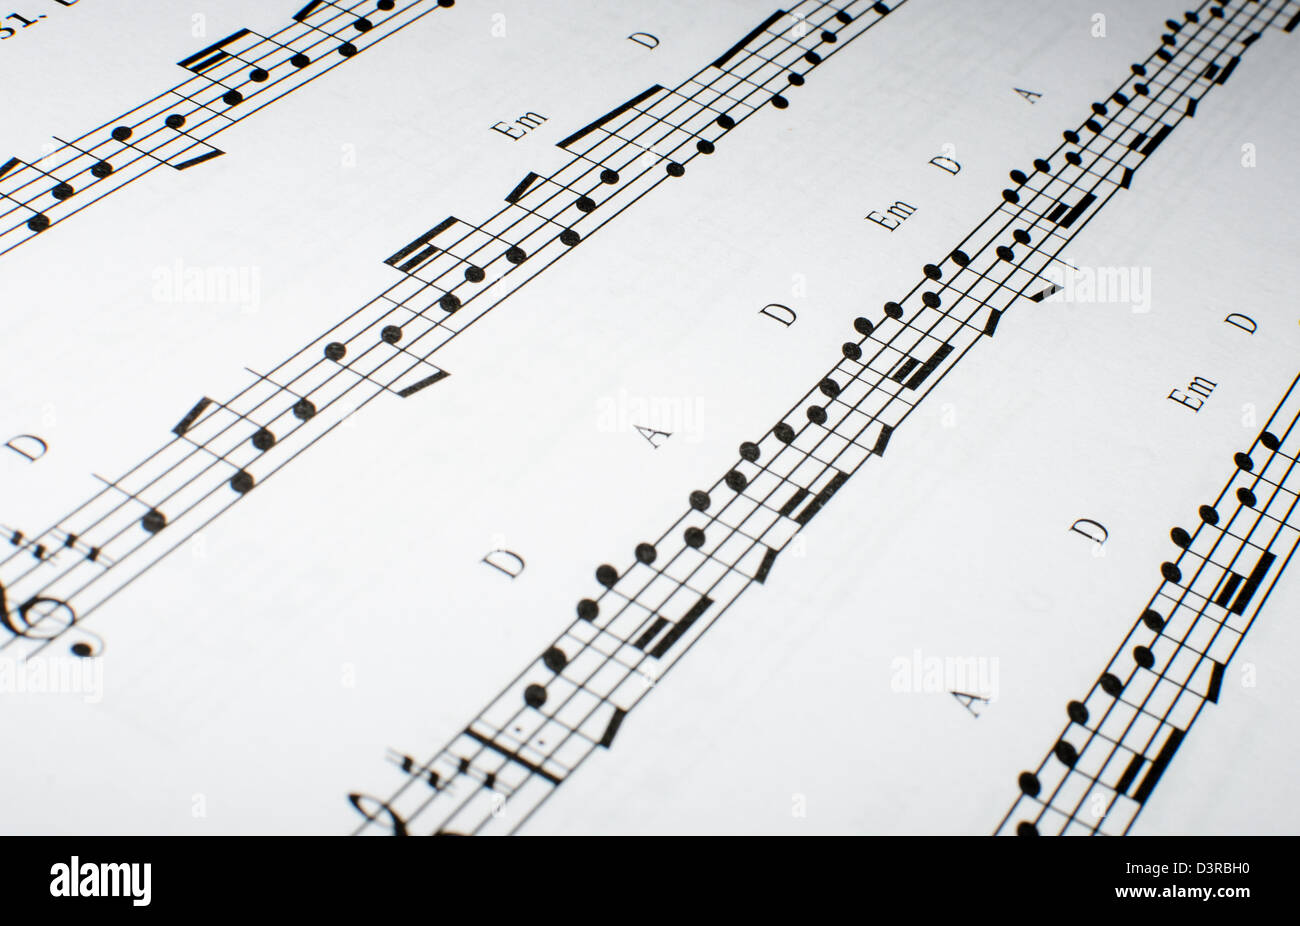 detail  of a note sheet - Stock Image